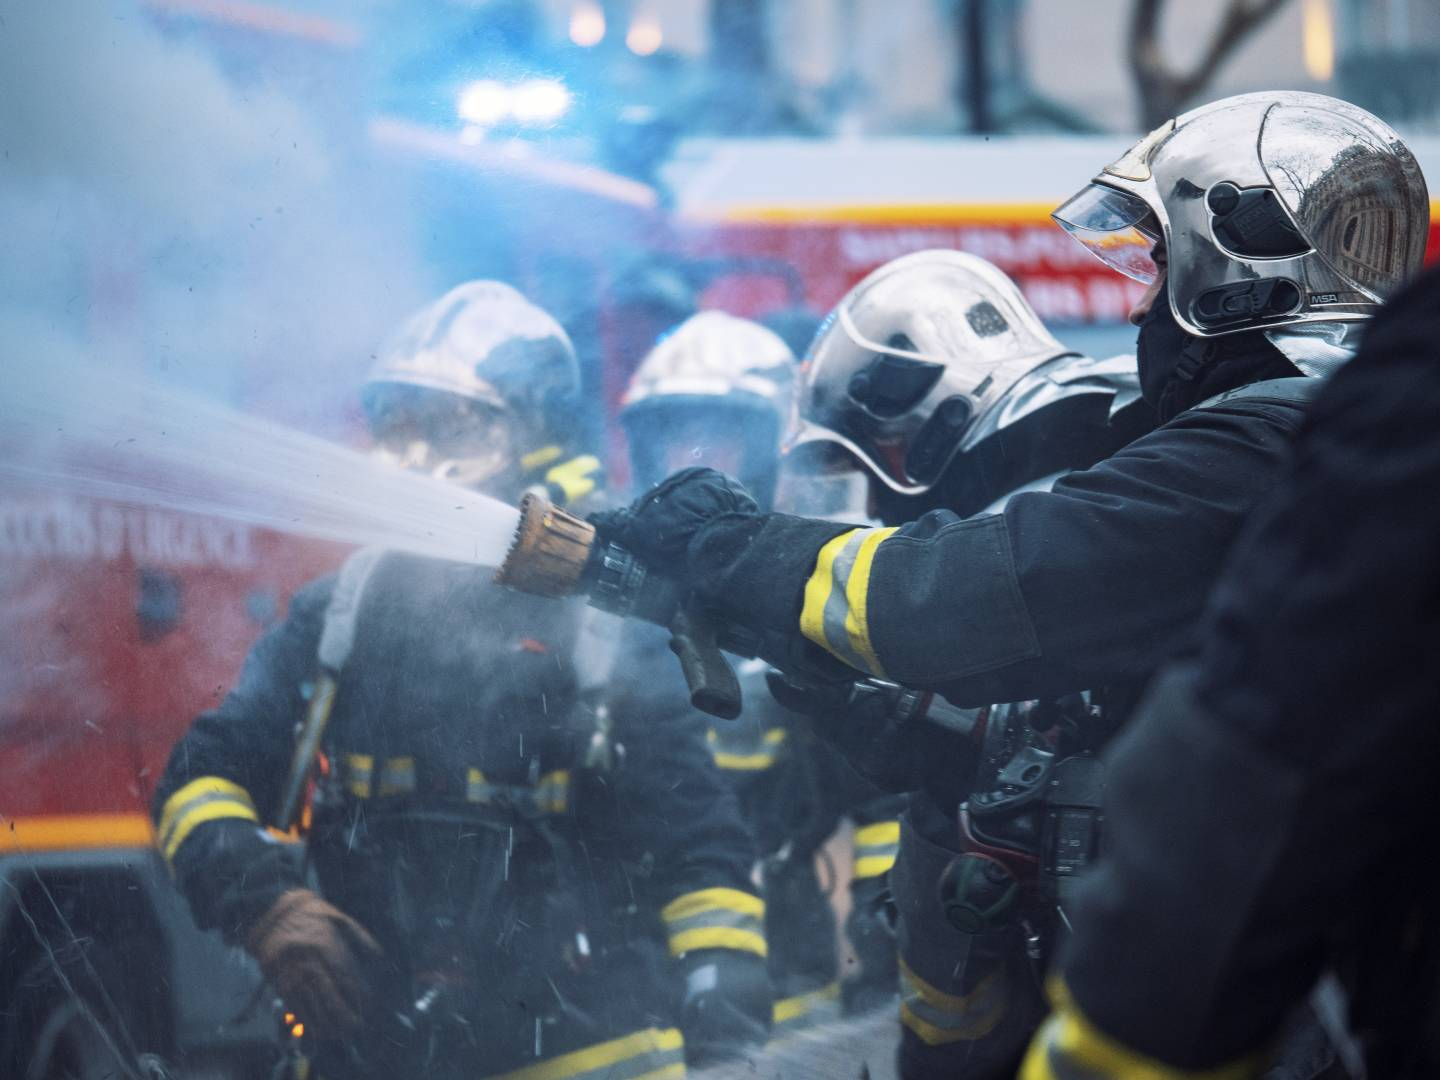 Firemen during the Gilet Jaunes protests, Paris, photo by Vincent N. Van